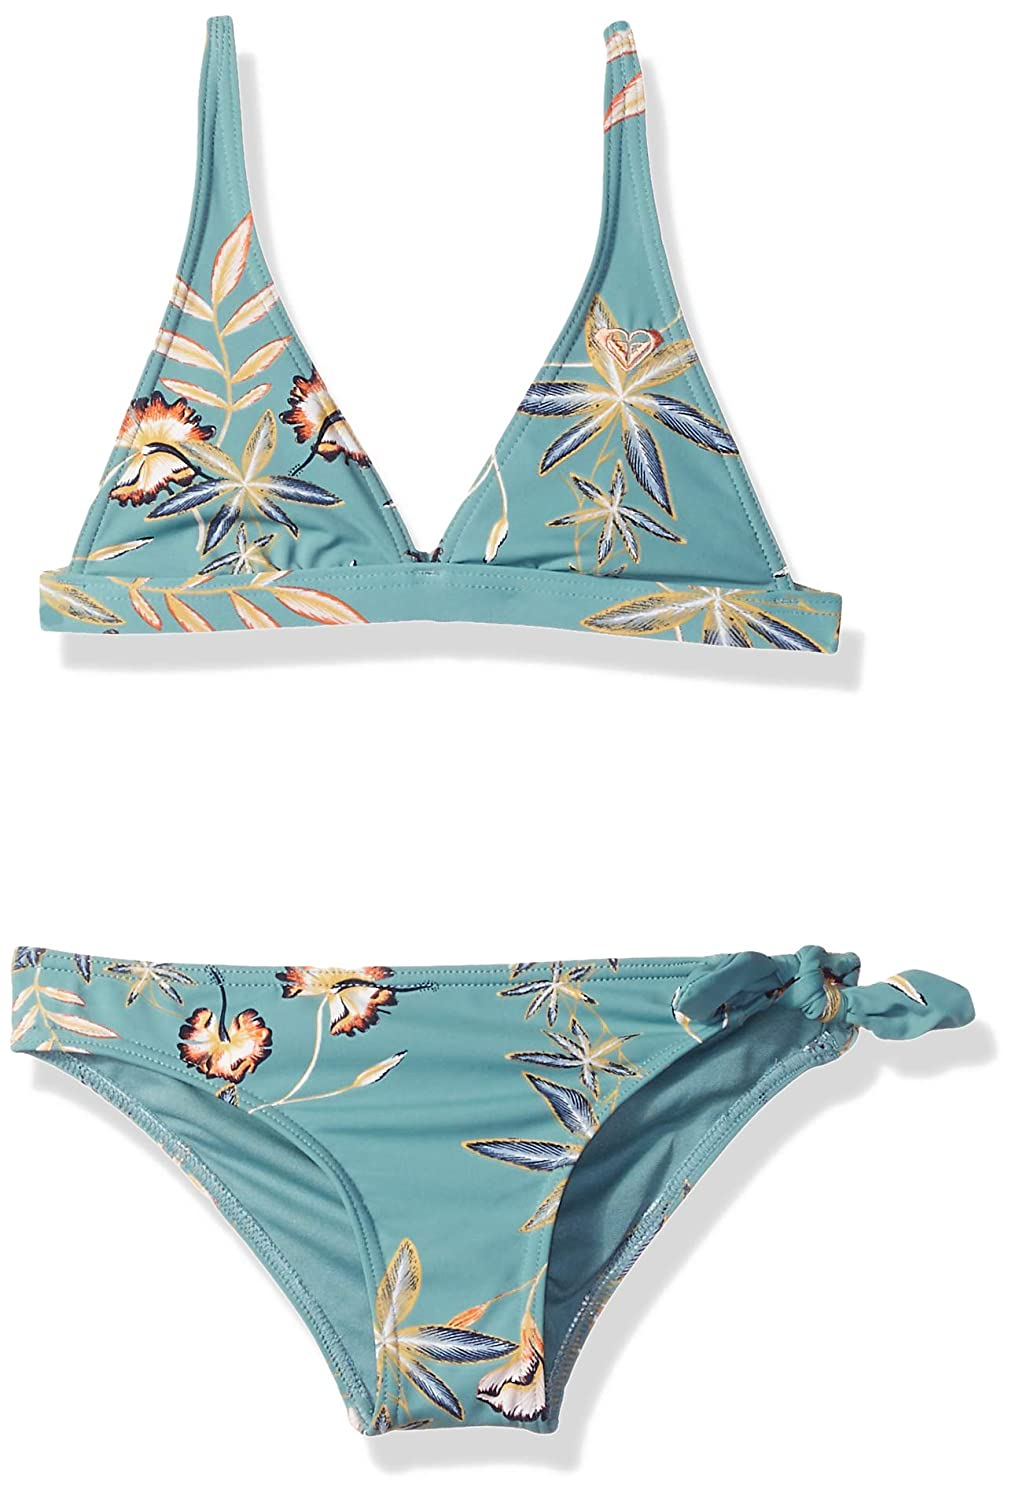 Roxy Girls' Big Born in Waves Tri Top Swimsuit Set ERGX203170